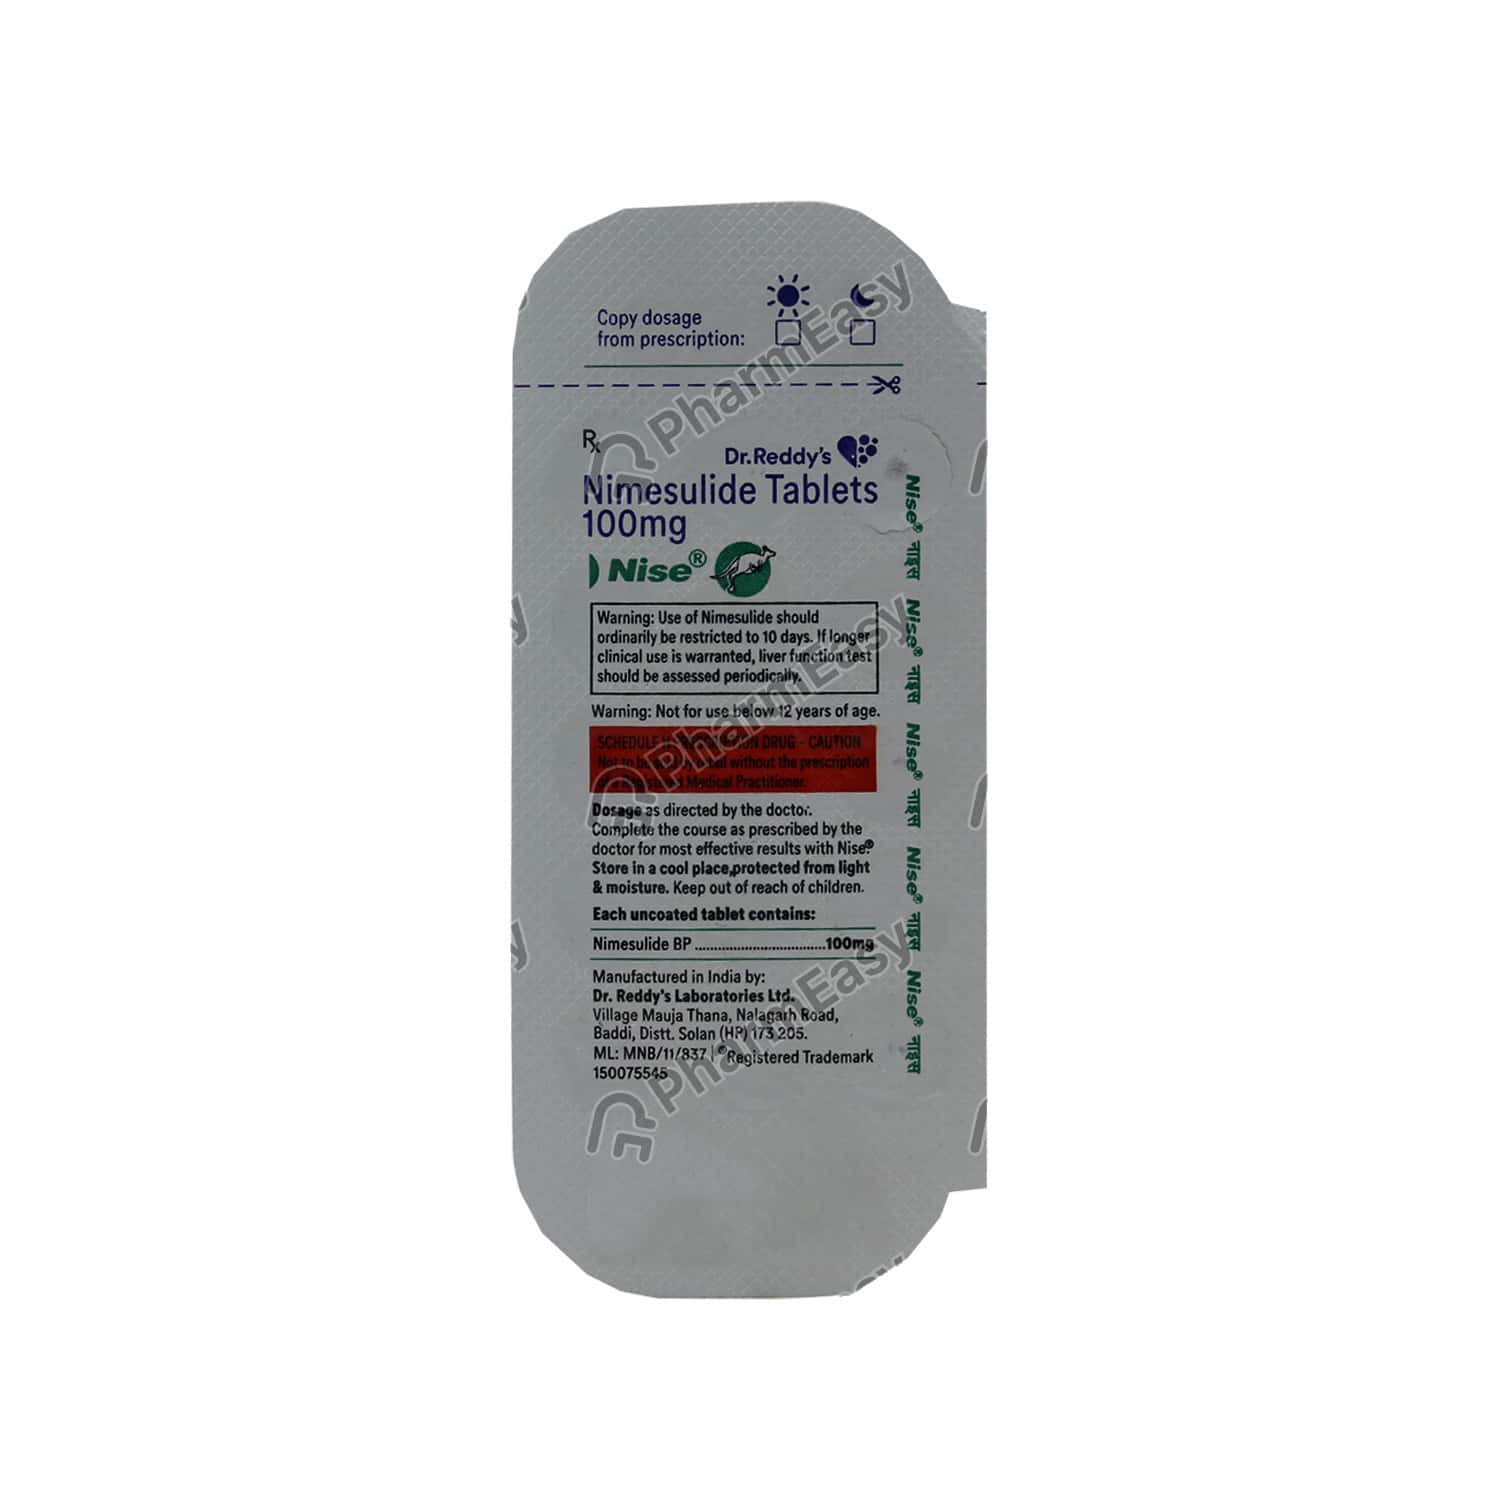 Nise 100mg Strip Of 15 Tablets